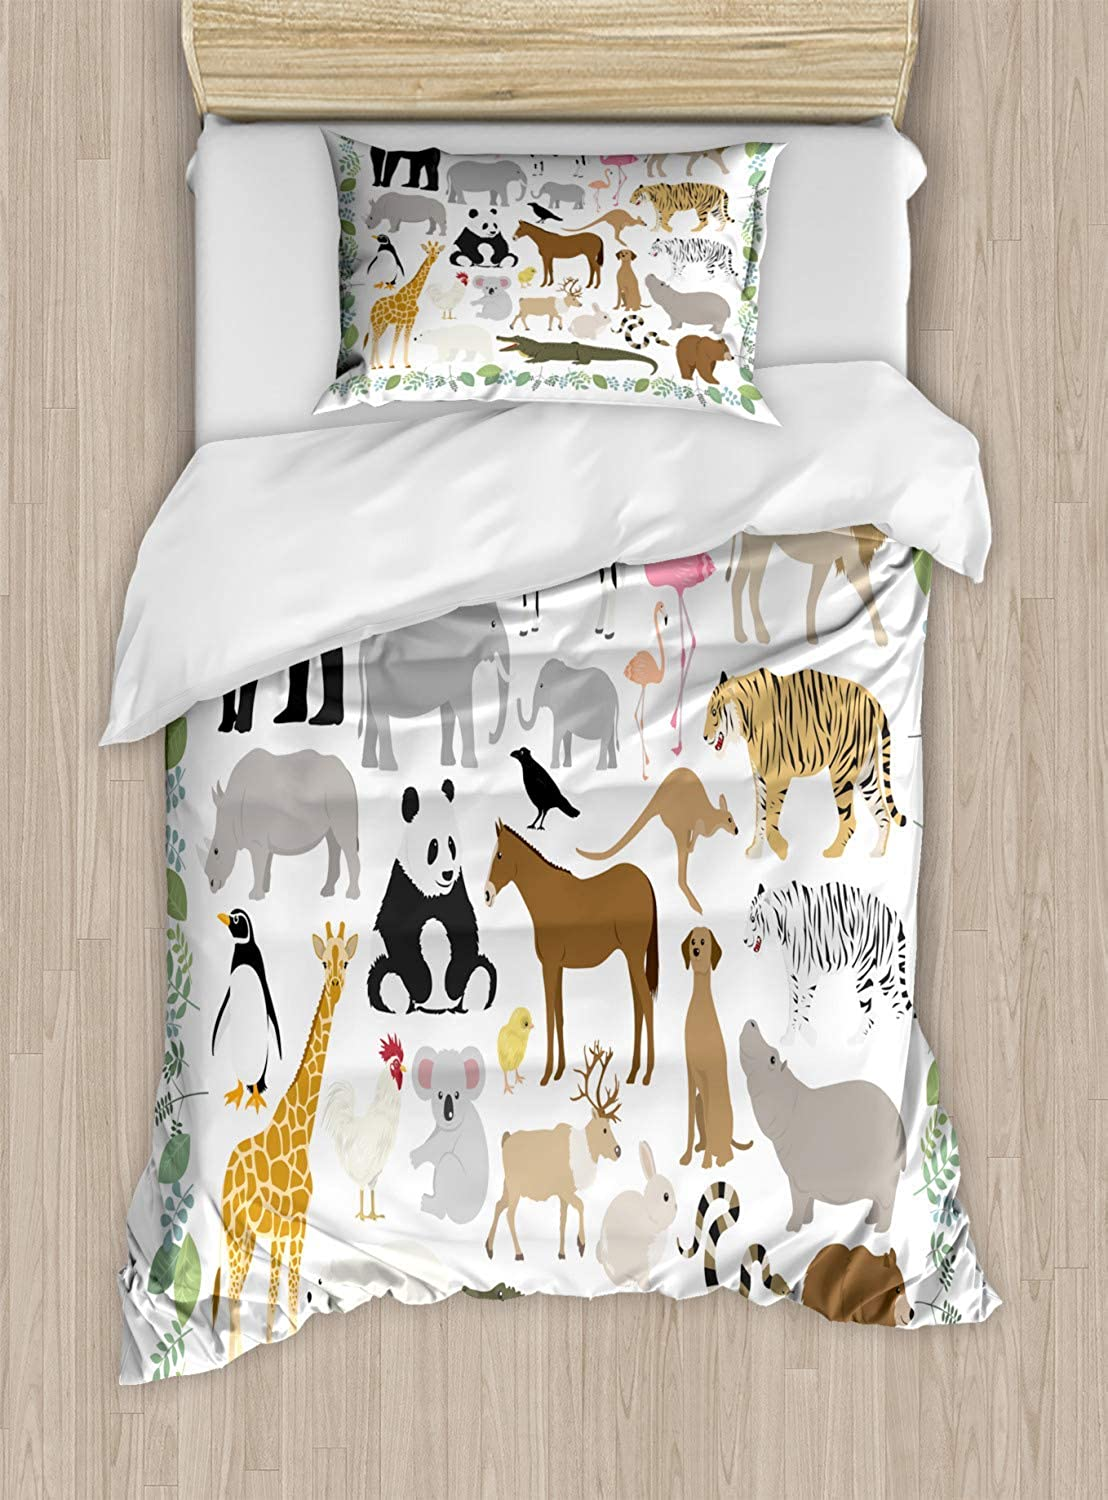 VpinkLVHOME Animal Duvet Cover Set Twin Size,Various Forest Creatures with Leaves Around As Frame Design,Kids Bedding  Double Brushed Microfiber,Pale Olive Green and Multicolor